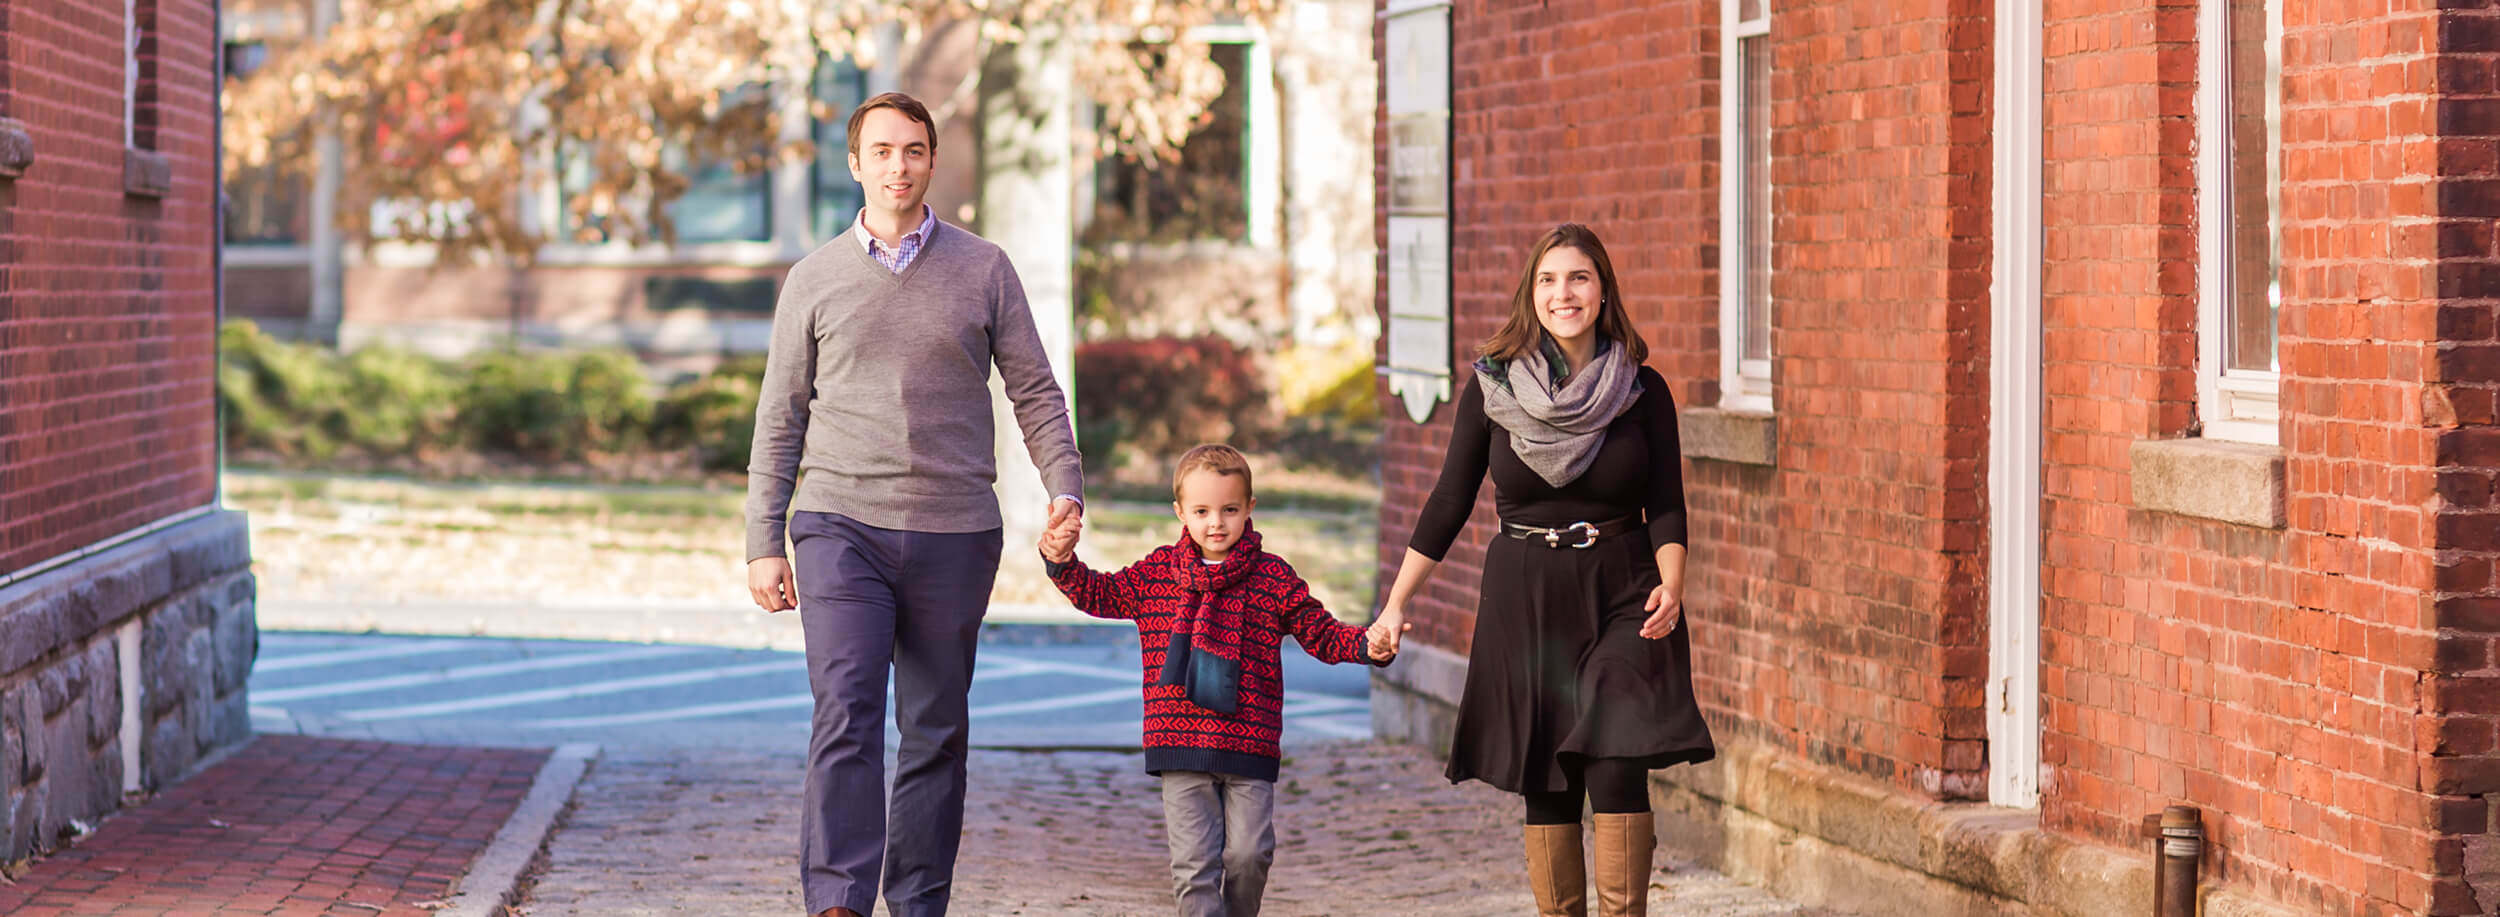 Lindsey Victoria Photography Family Photographer 2.jpg